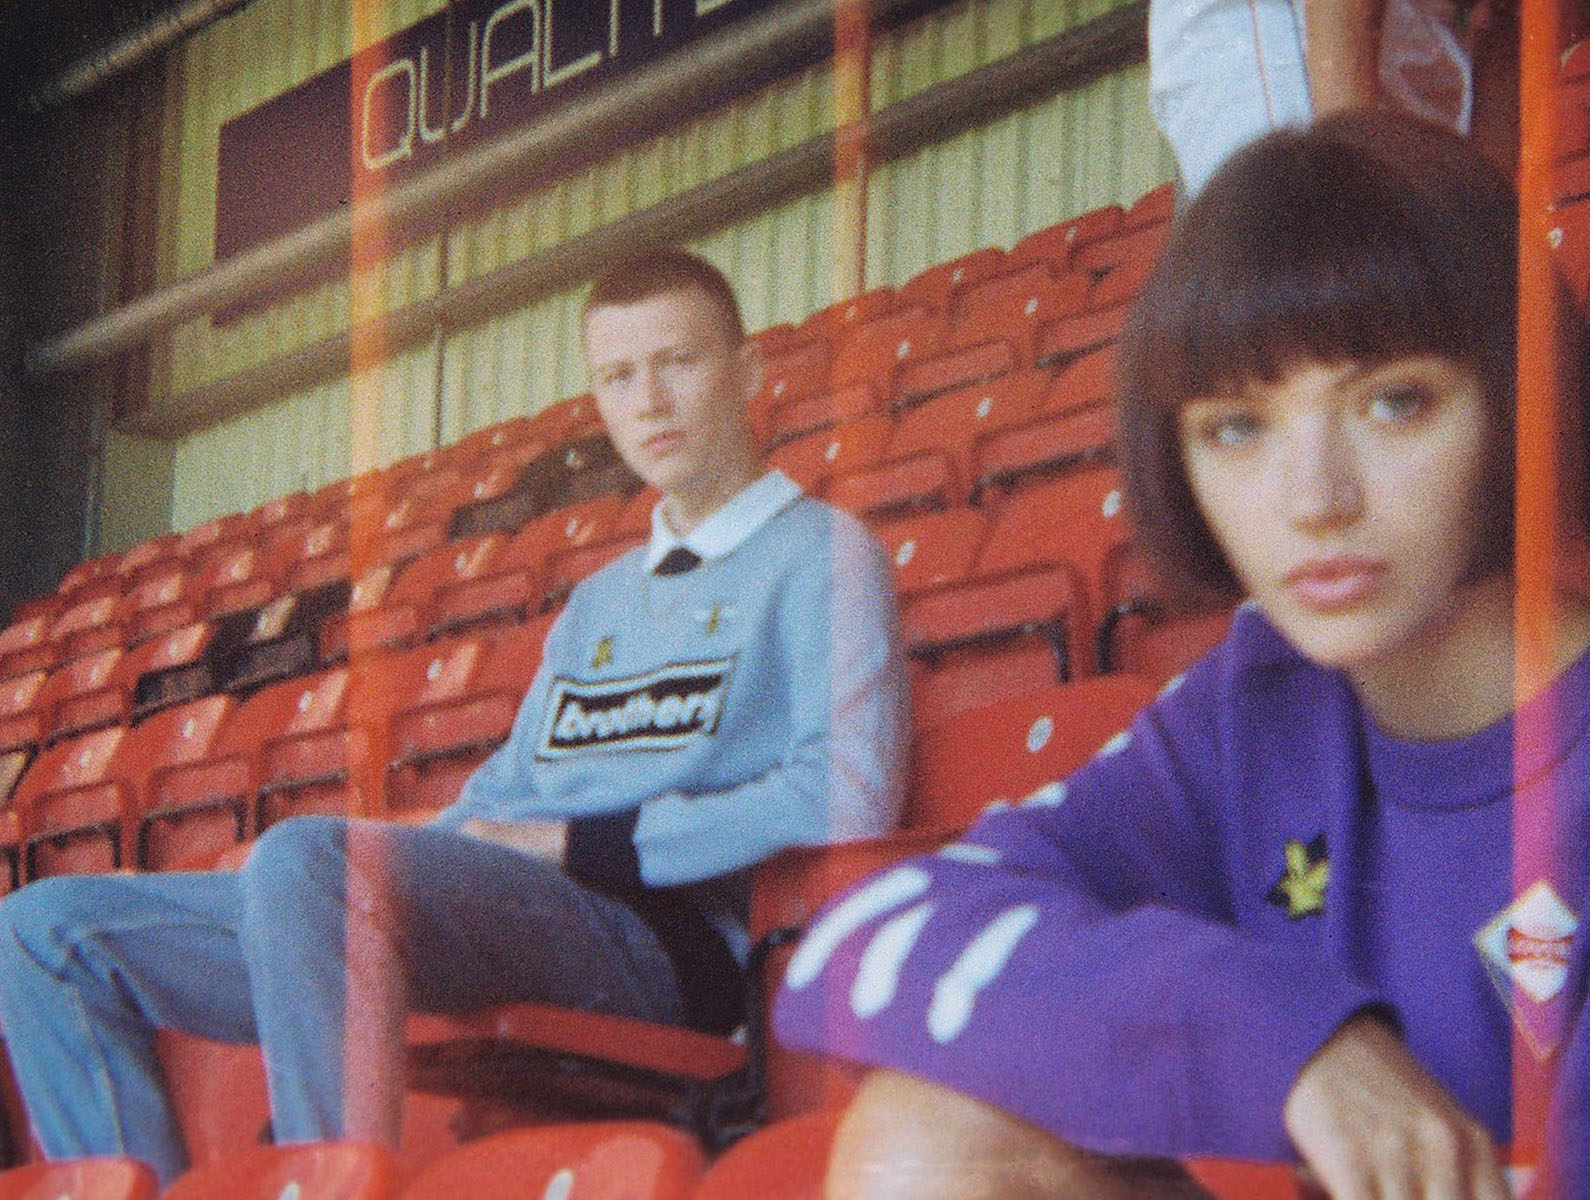 110 neg, 1 girl, 1 lad in LFC ground by Tim Cole